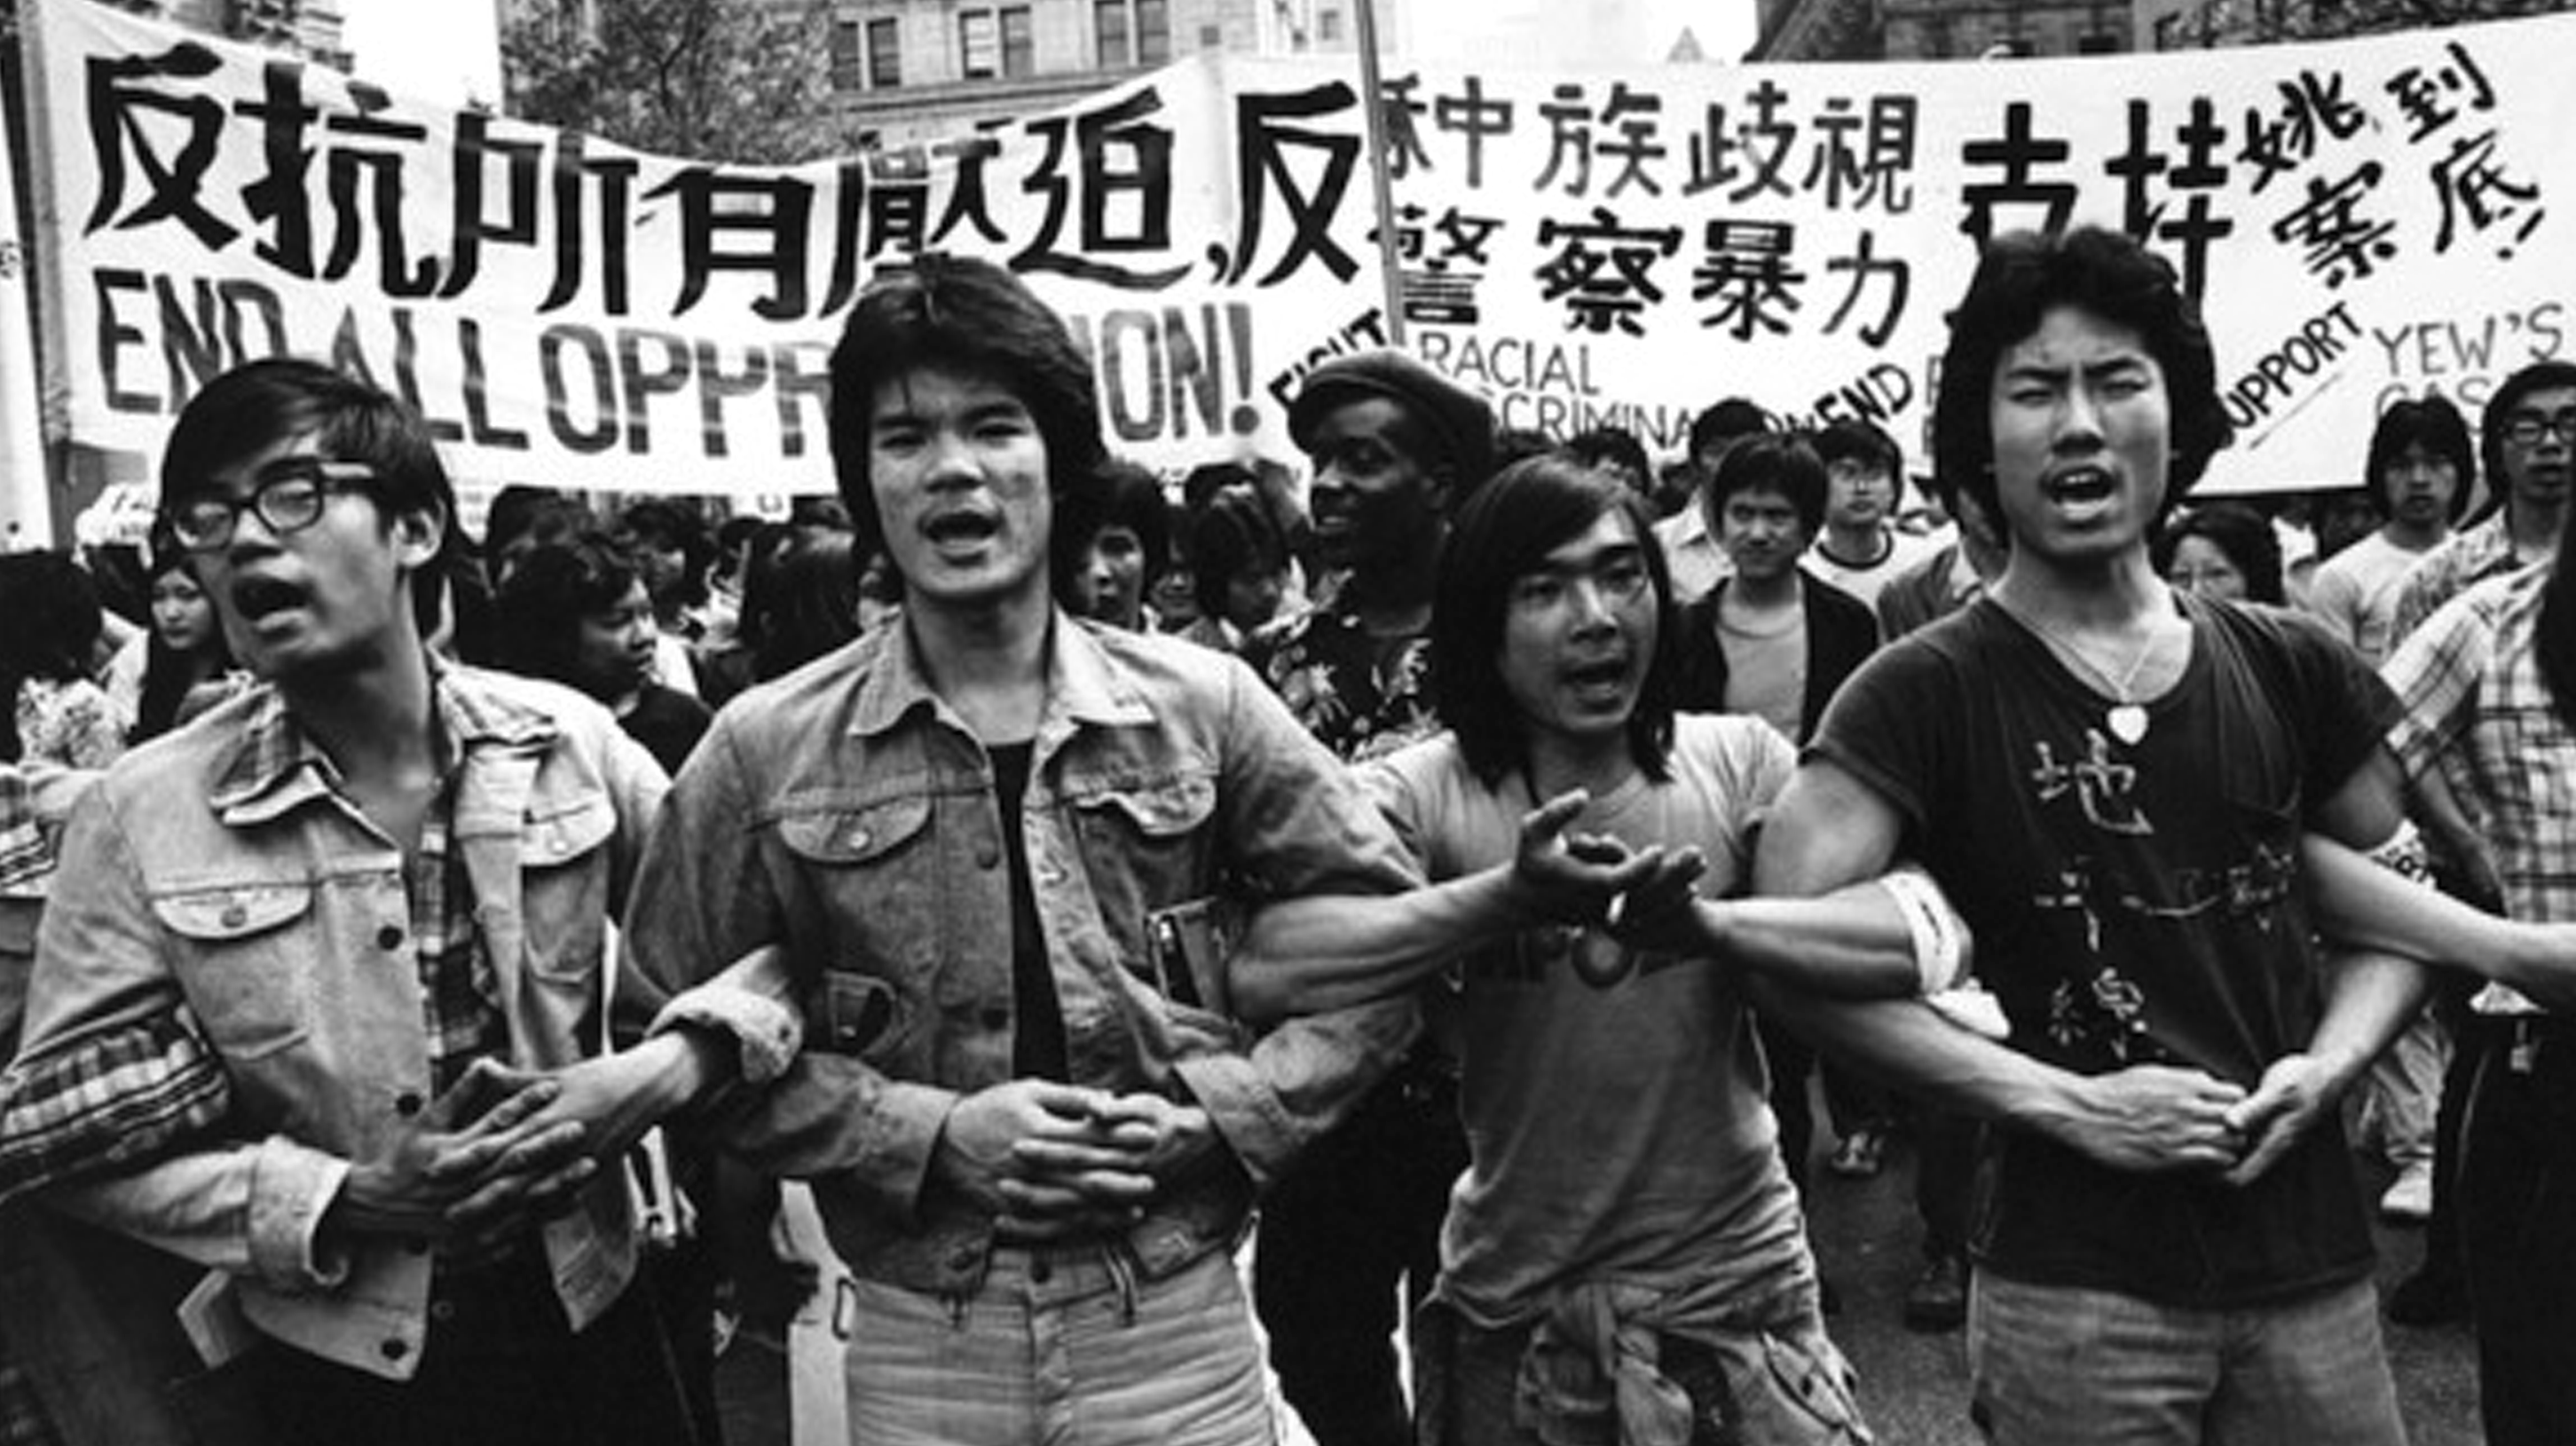 Peter Yew police brutality protesters, 1975. Image: Corky Lee/Interference Archives.